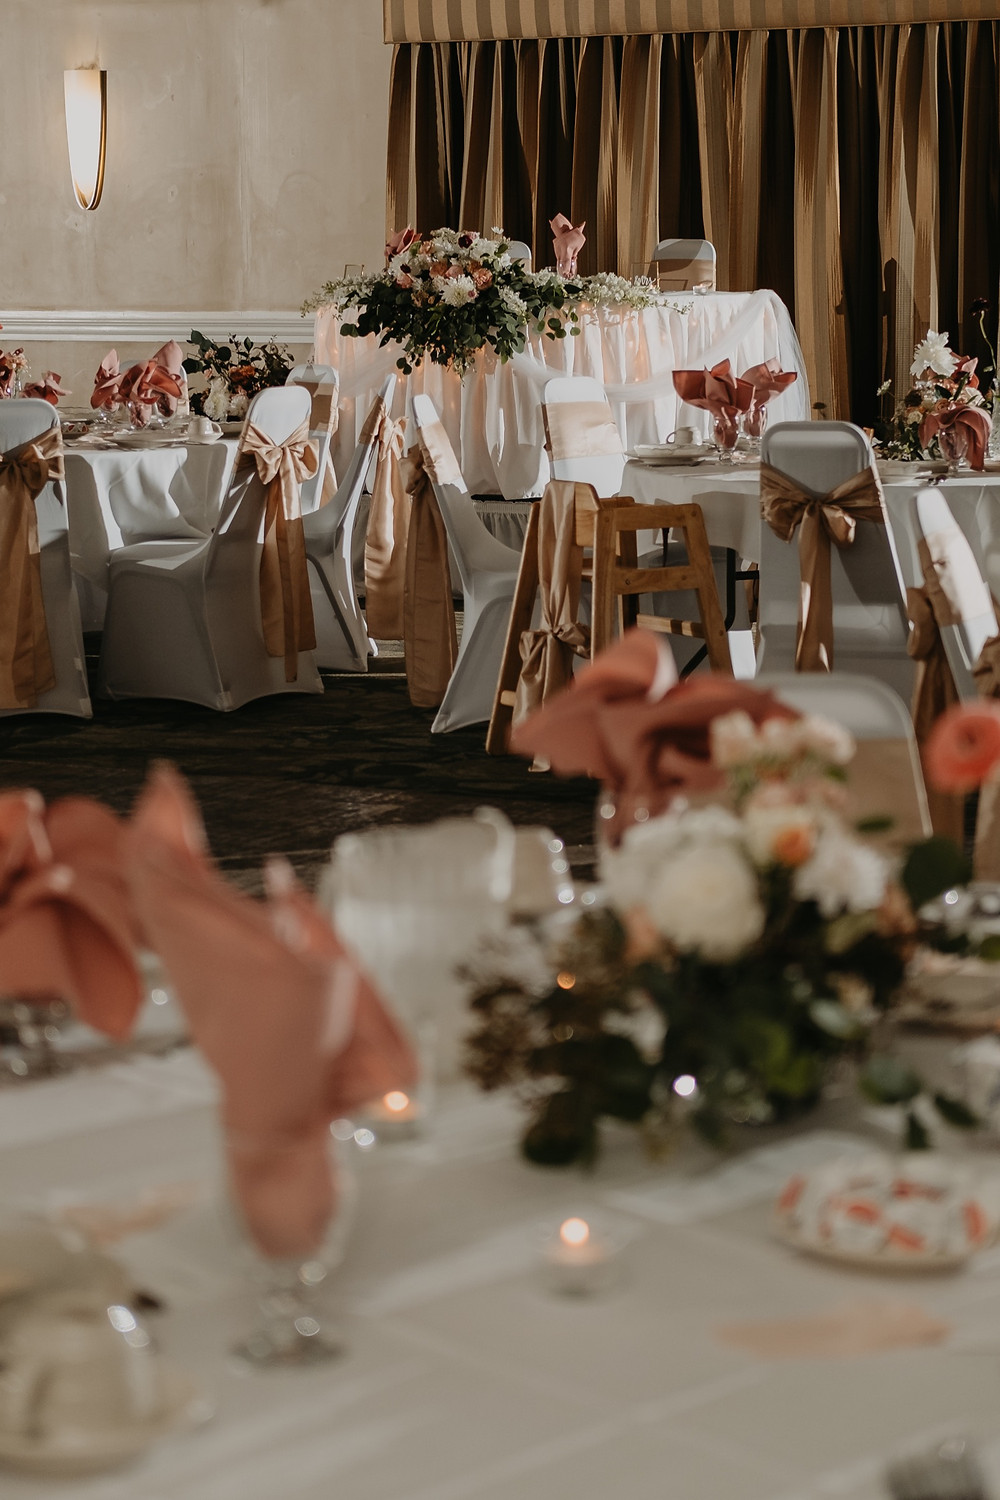 Banquet room wedding setup. Photographed by Nicole Leanne Photography.